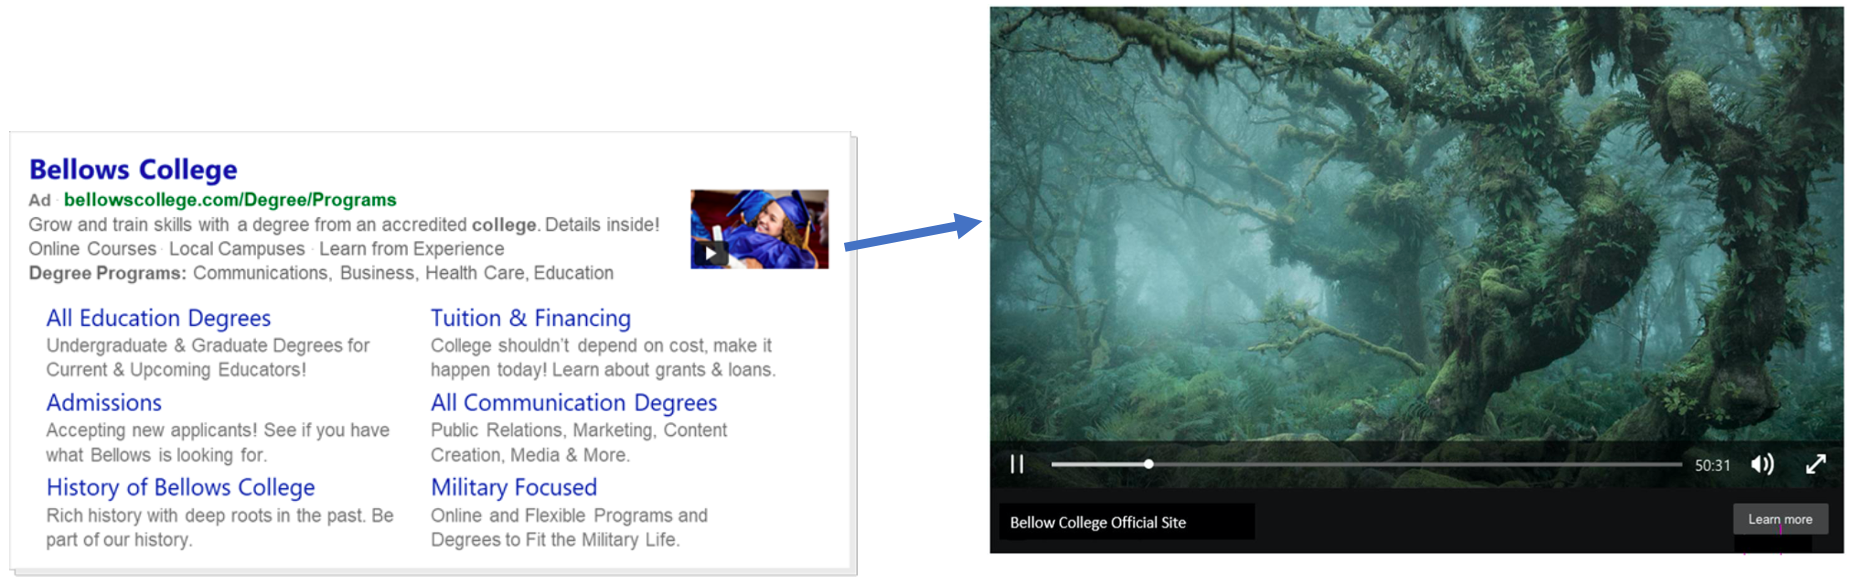 Microsoft Ads Video Extensions